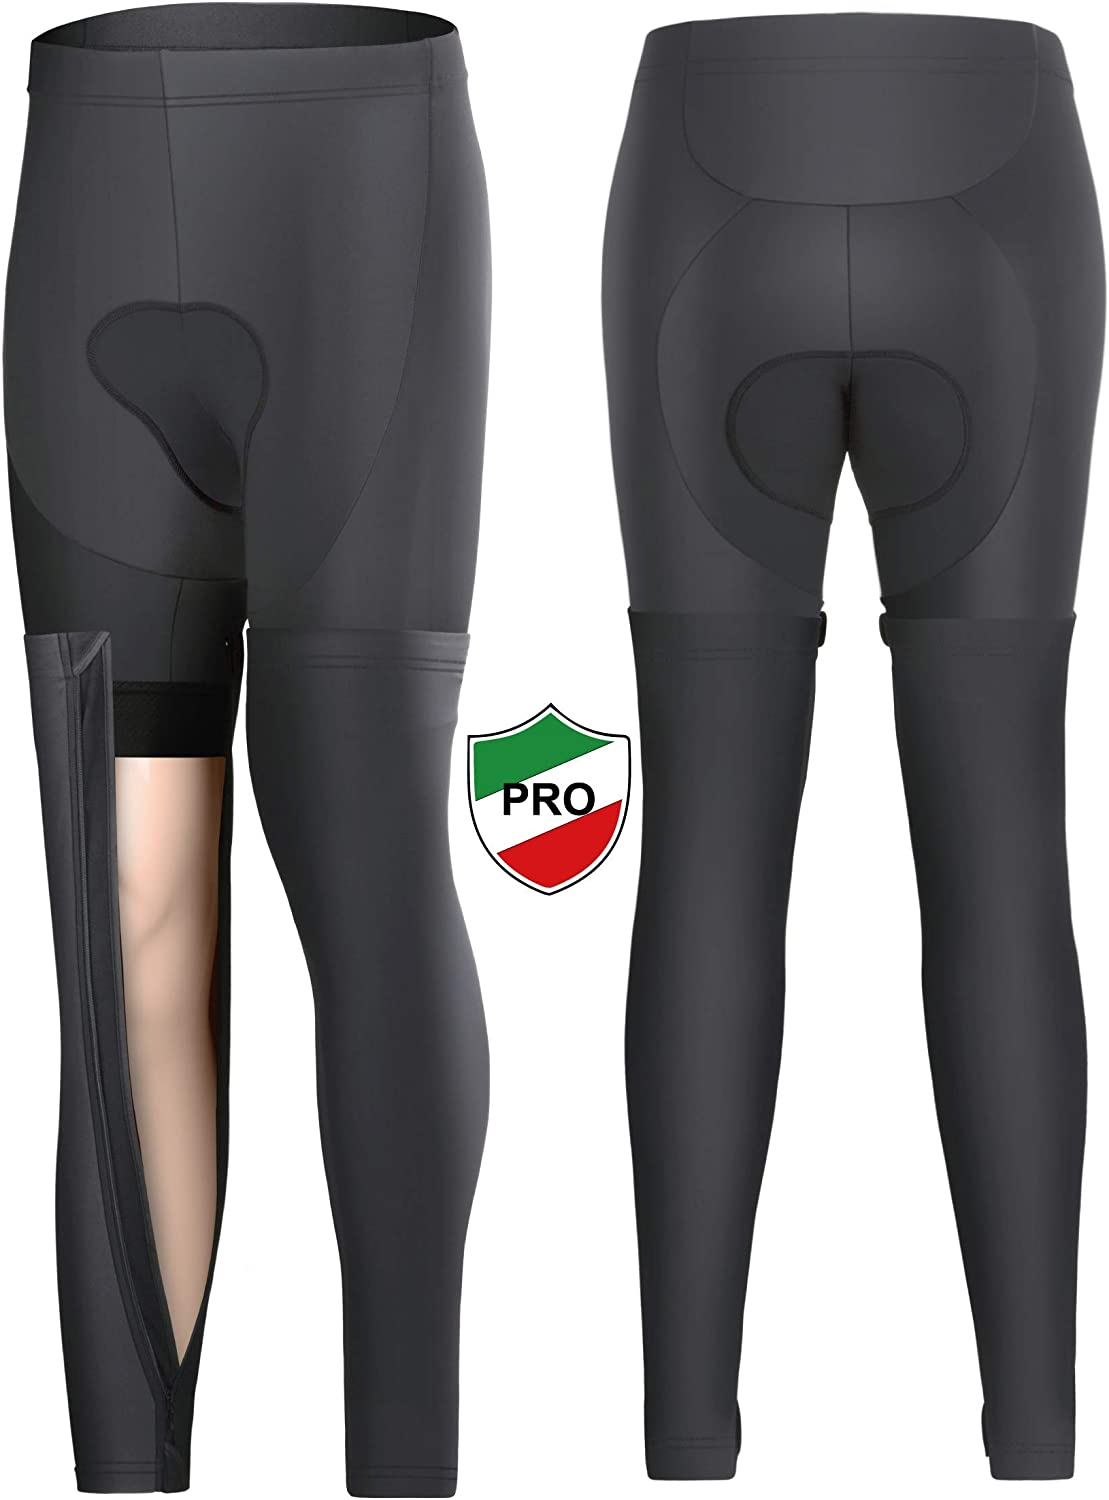 Ceroti Thermal Fleece Cycling Tights Bike Pants with Removable Leggings When Over Hot